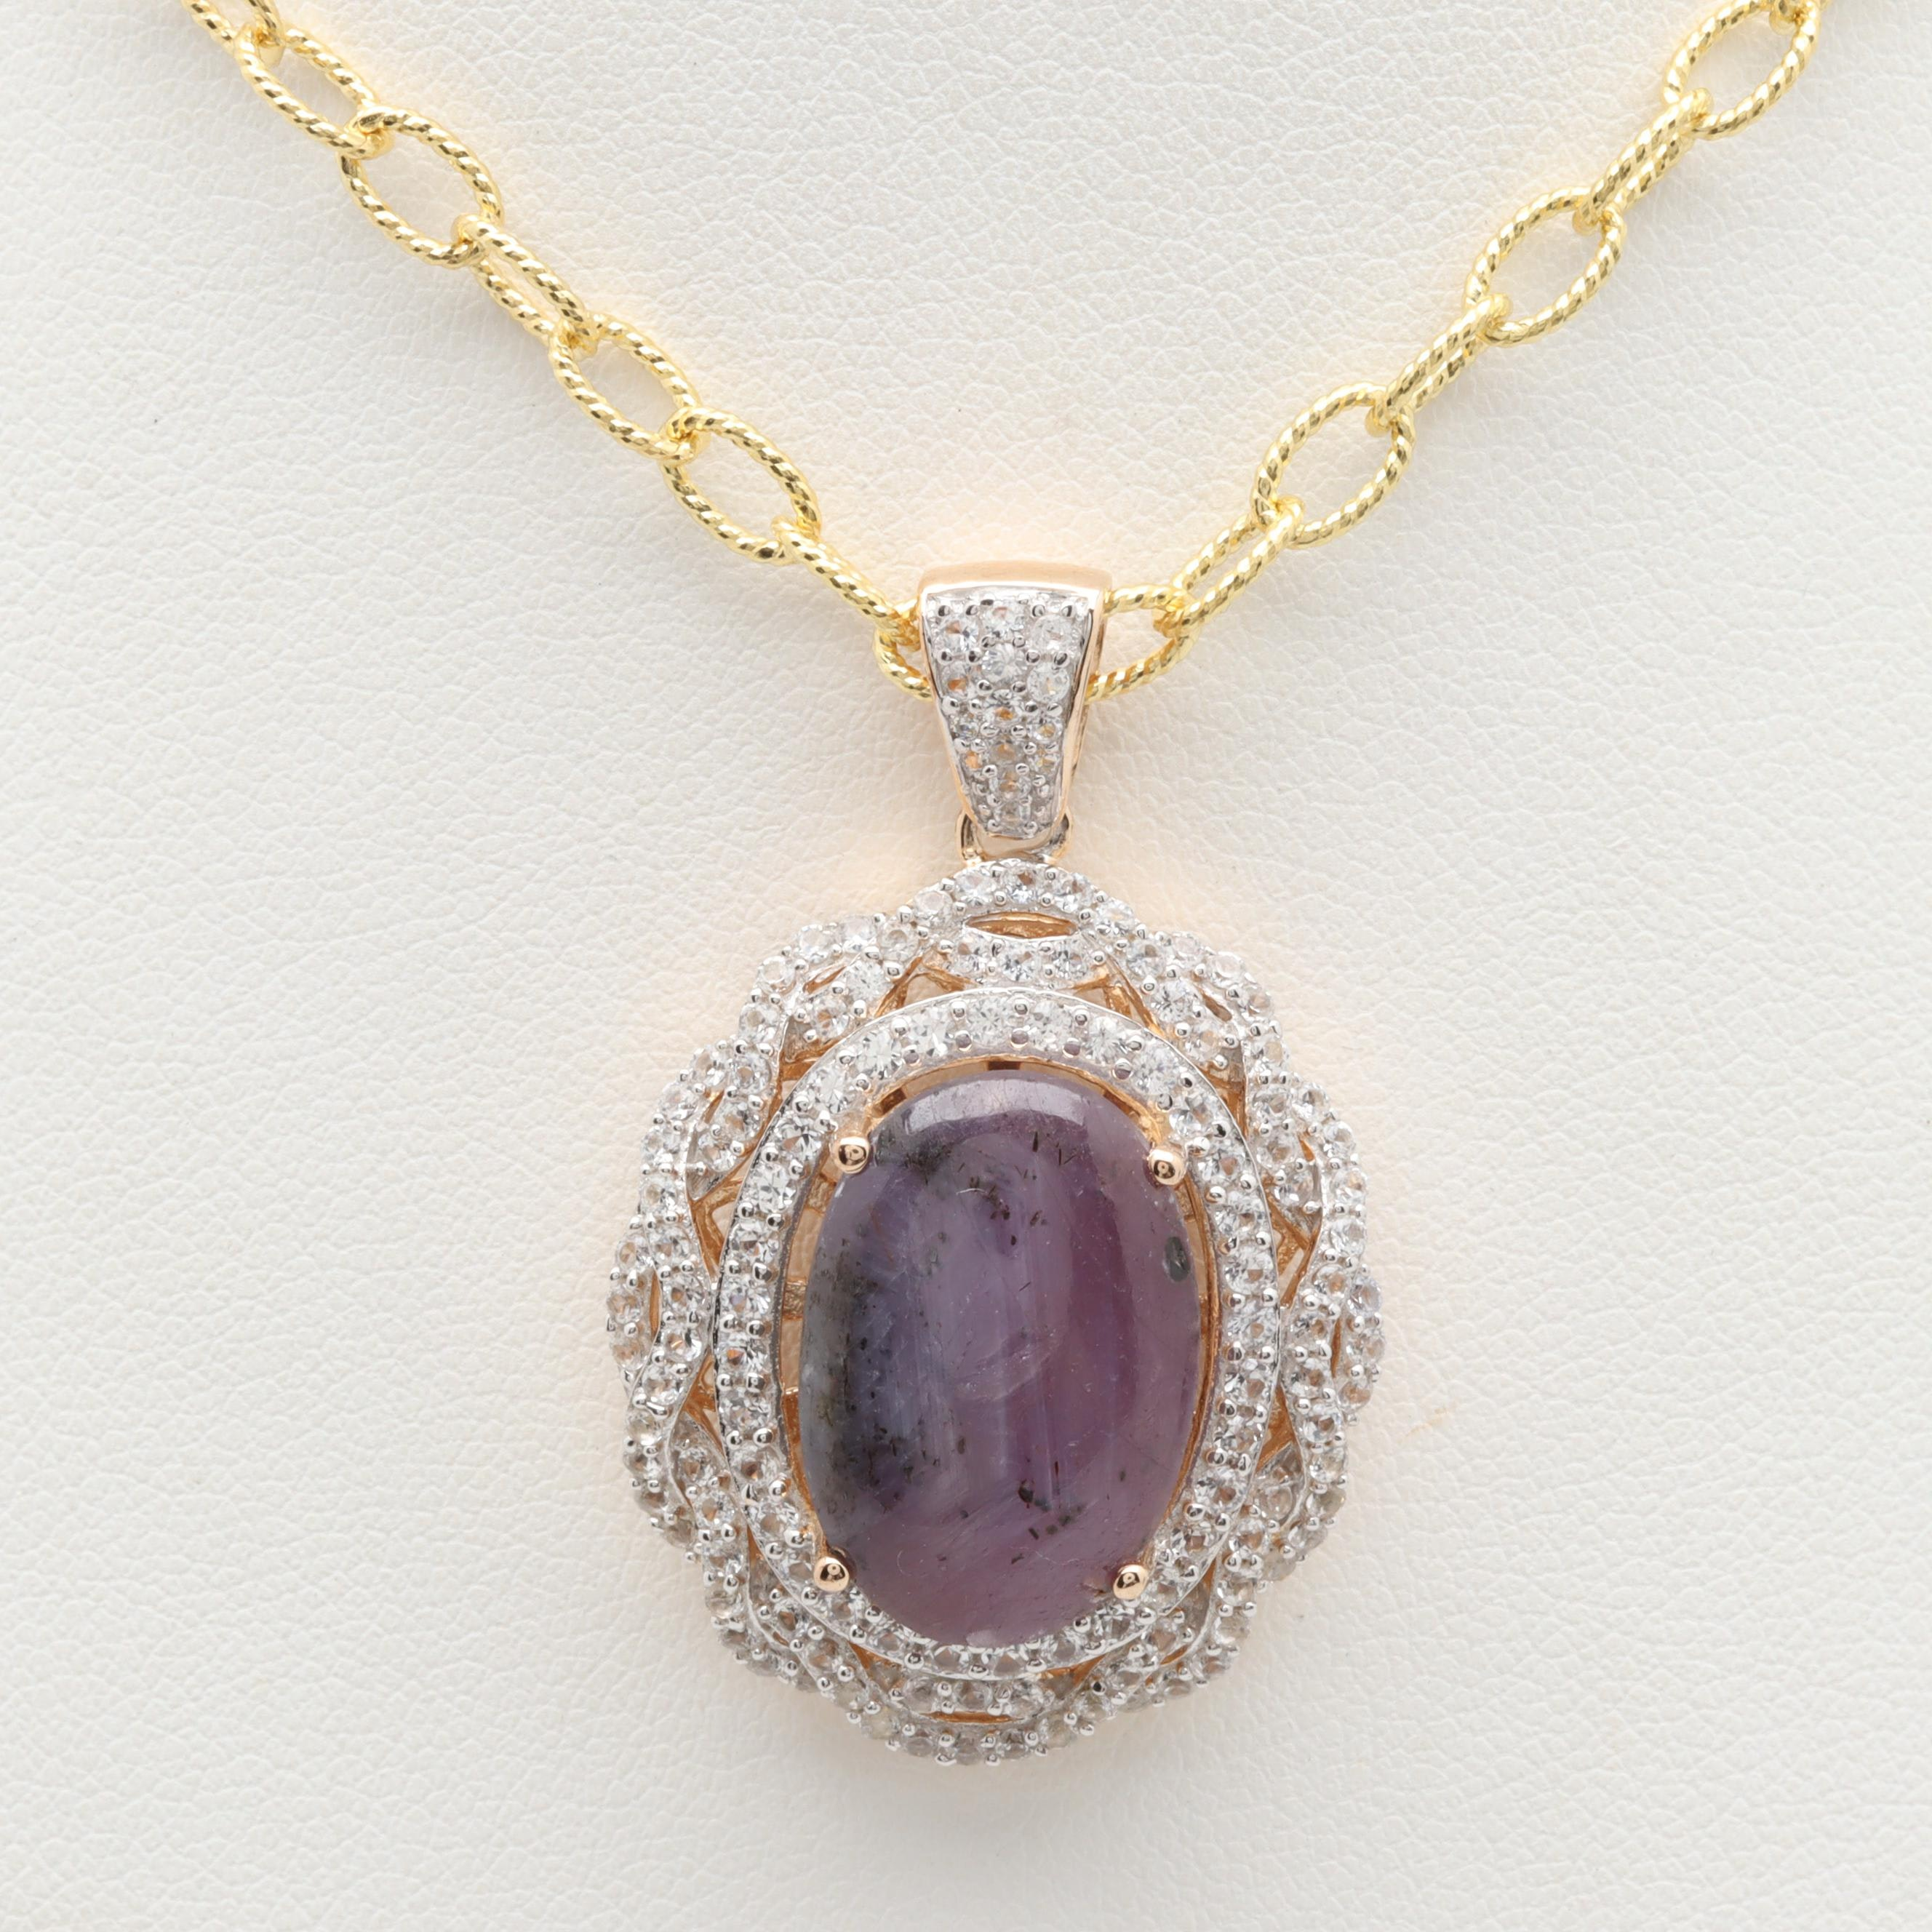 Gold Wash on Sterling Silver Star Ruby and White Sapphire Pendant Necklace